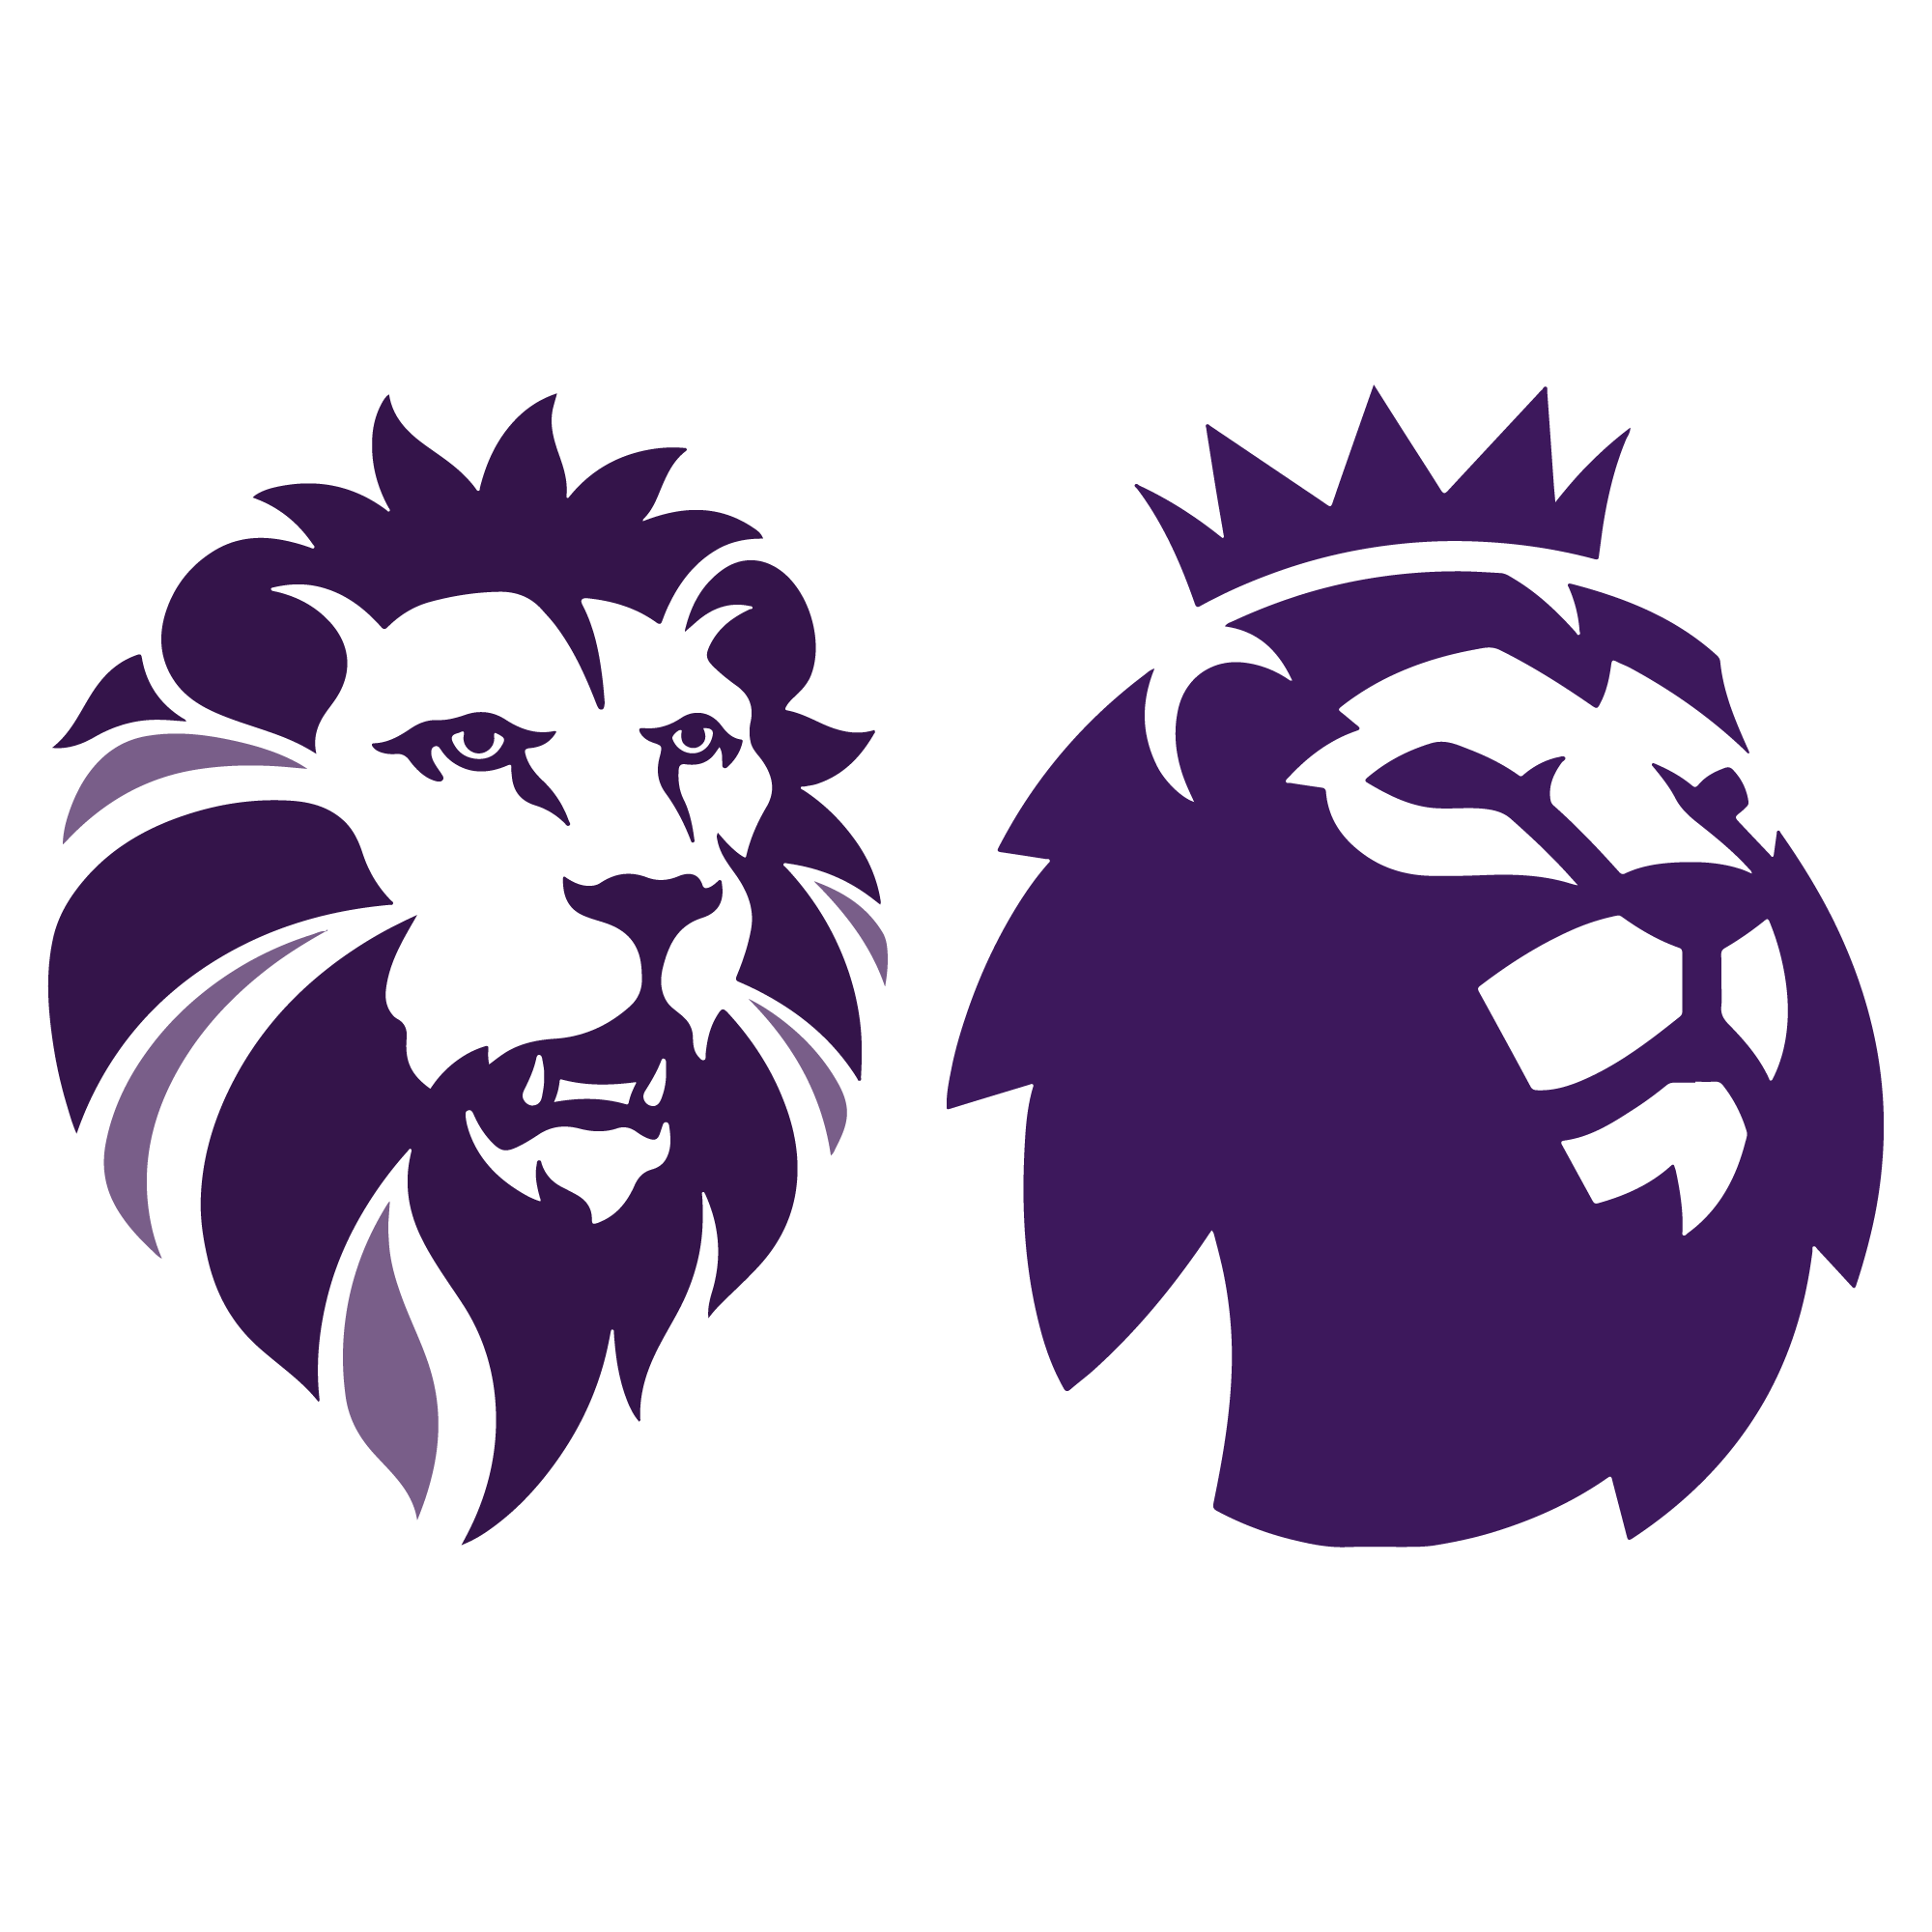 Silhouette clipart lion. Head at getdrawings com